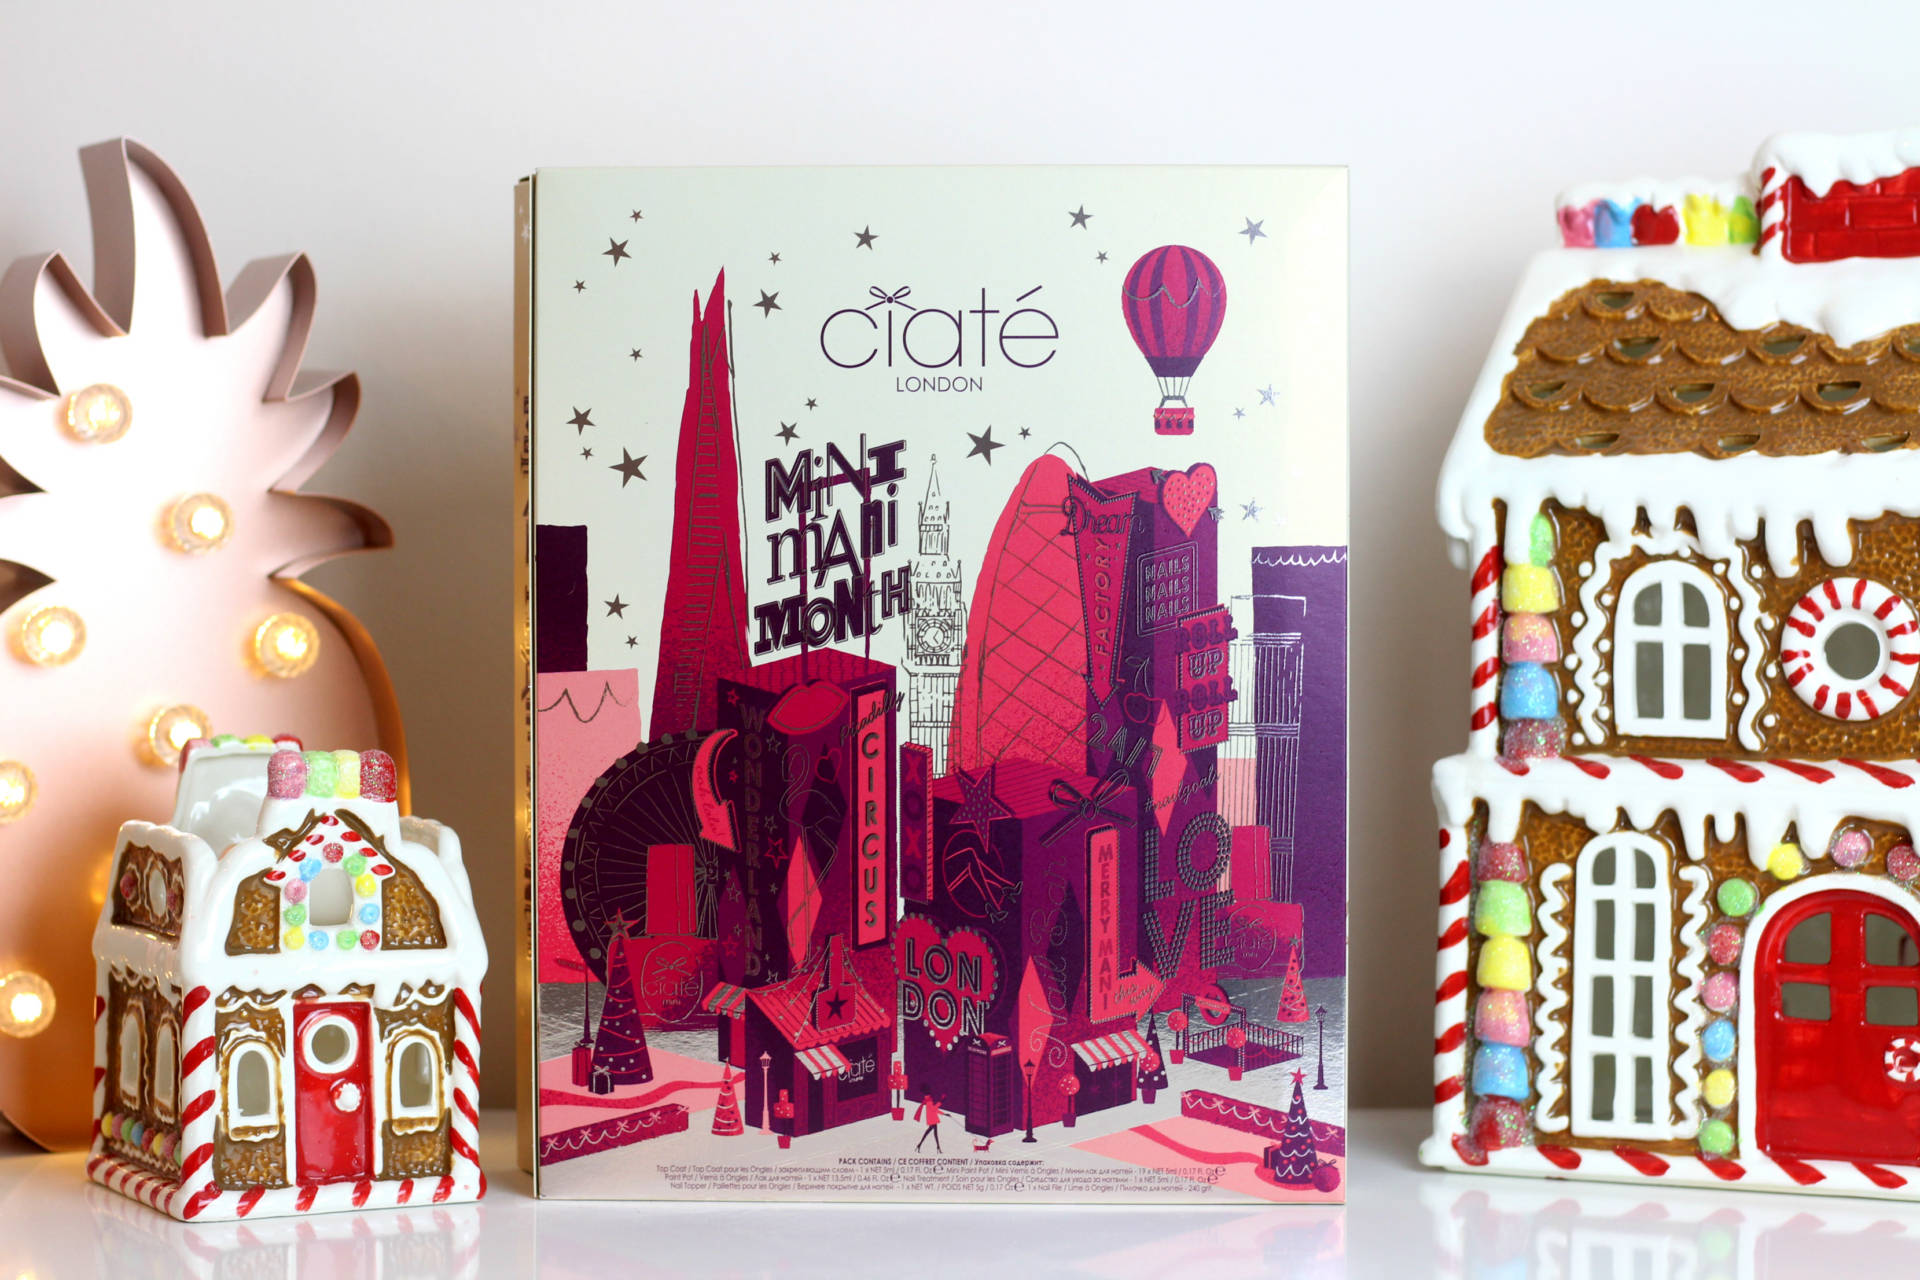 Ciaté London Mini Mani Month Advent Calendar